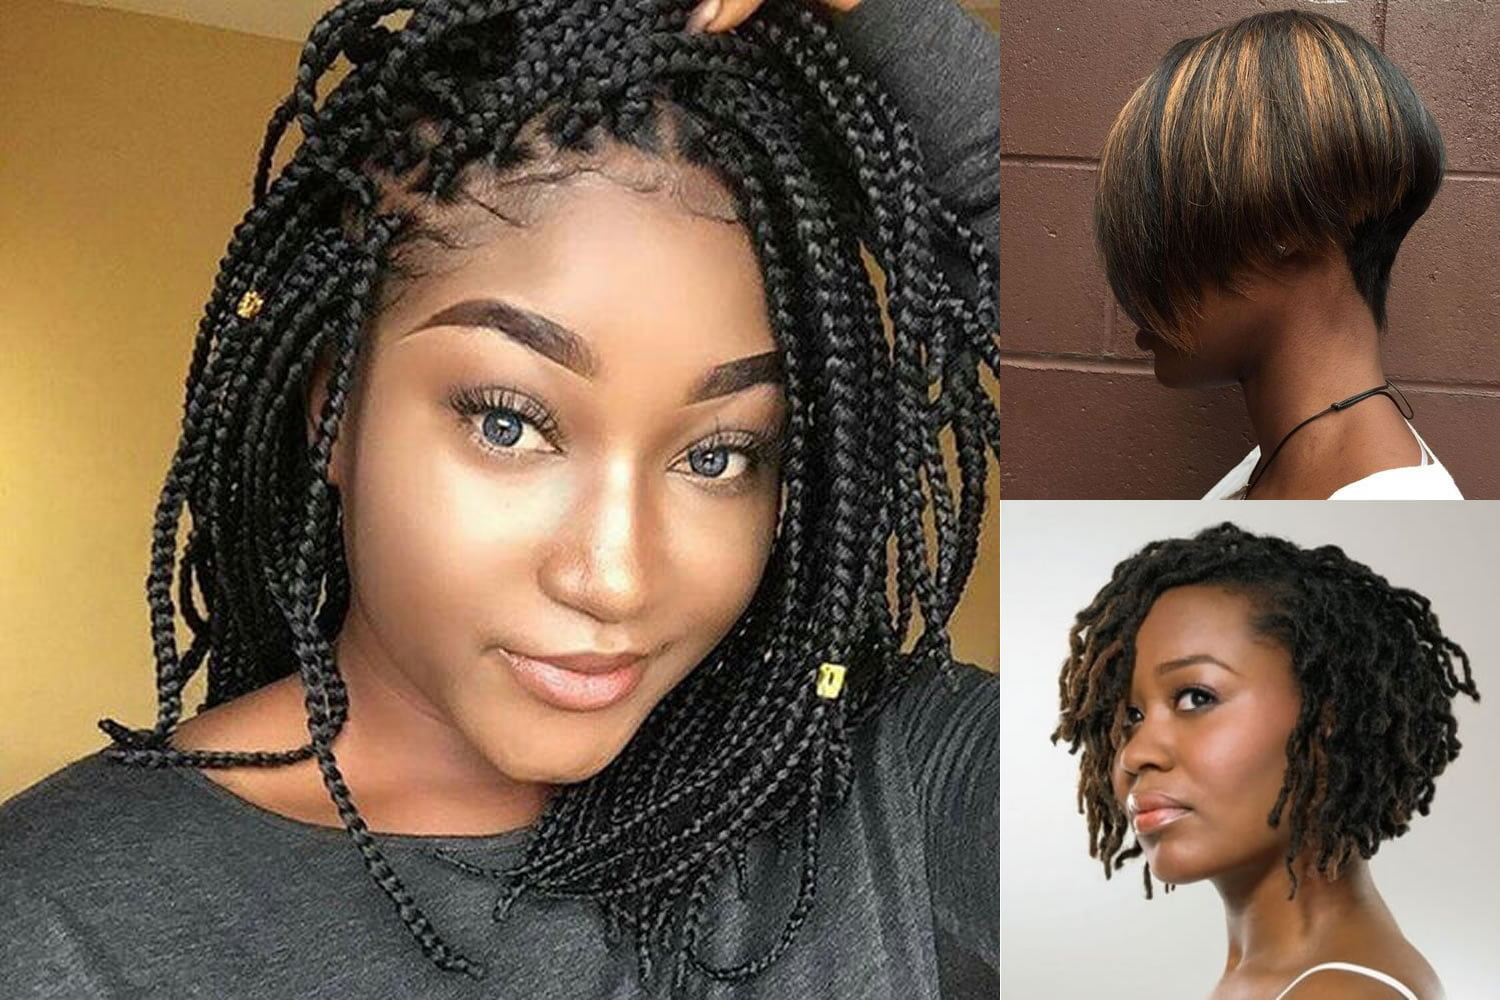 Hairstyles 2019: Short Bob Hairstyle For Black Women & Hair Color Ideas